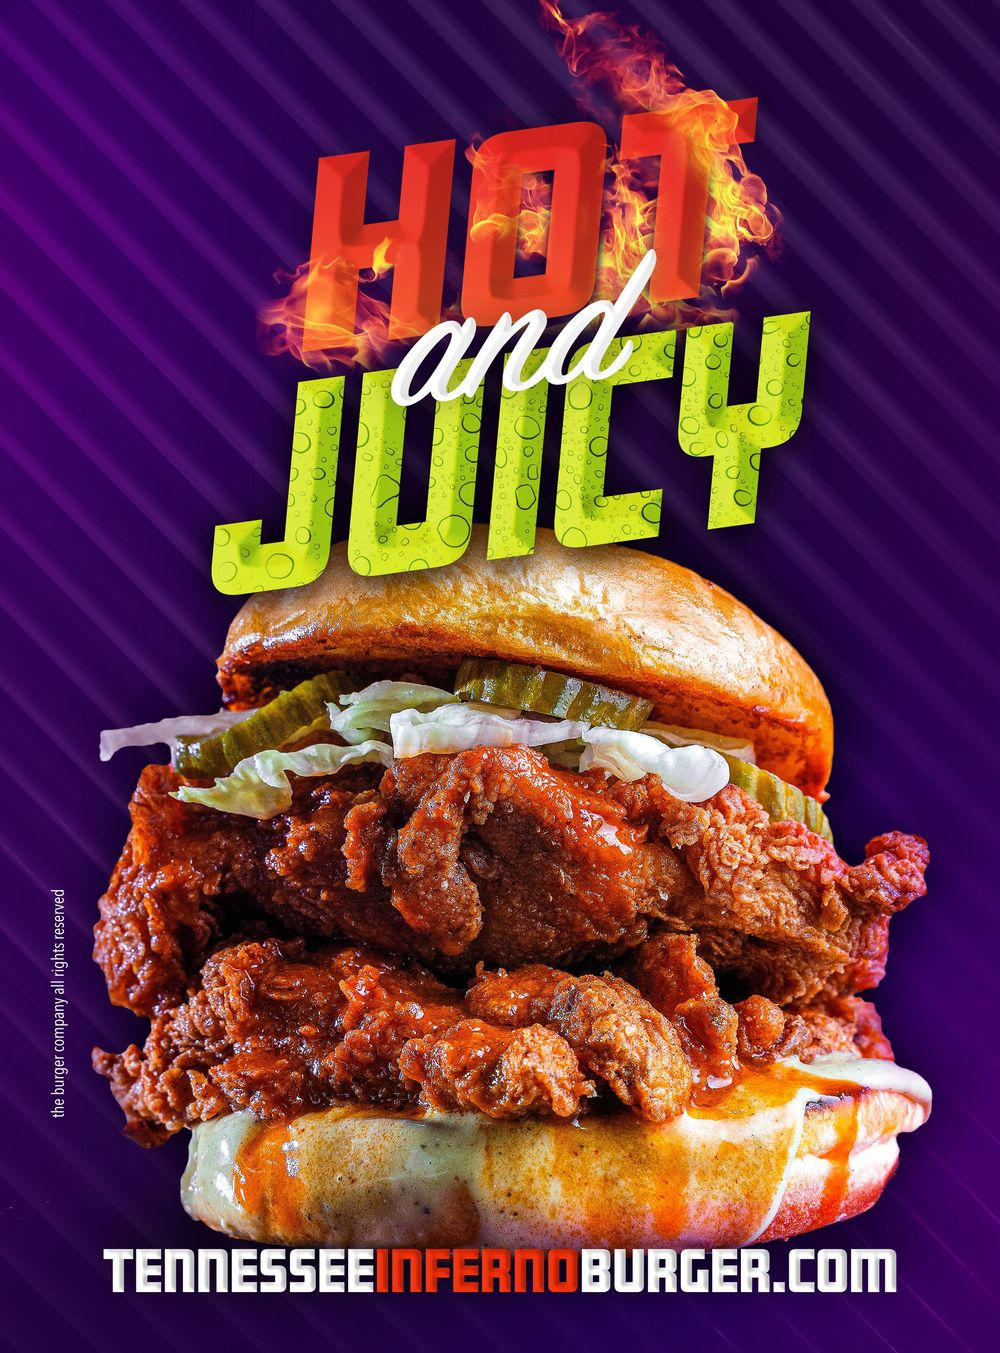 Hot & Juicy Ad - image 1 - student project